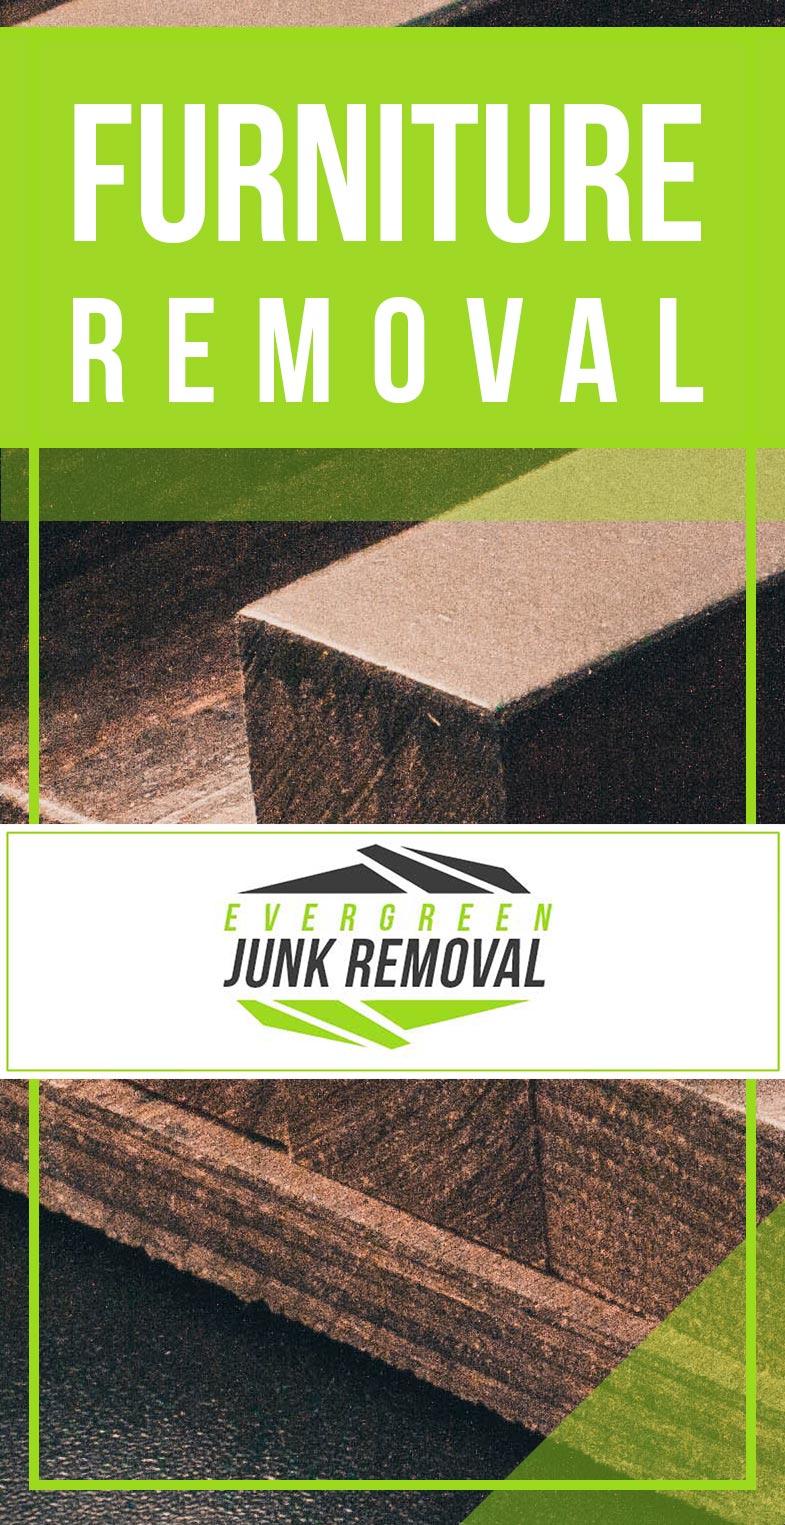 Junk Removal Miramar Furniture Removal